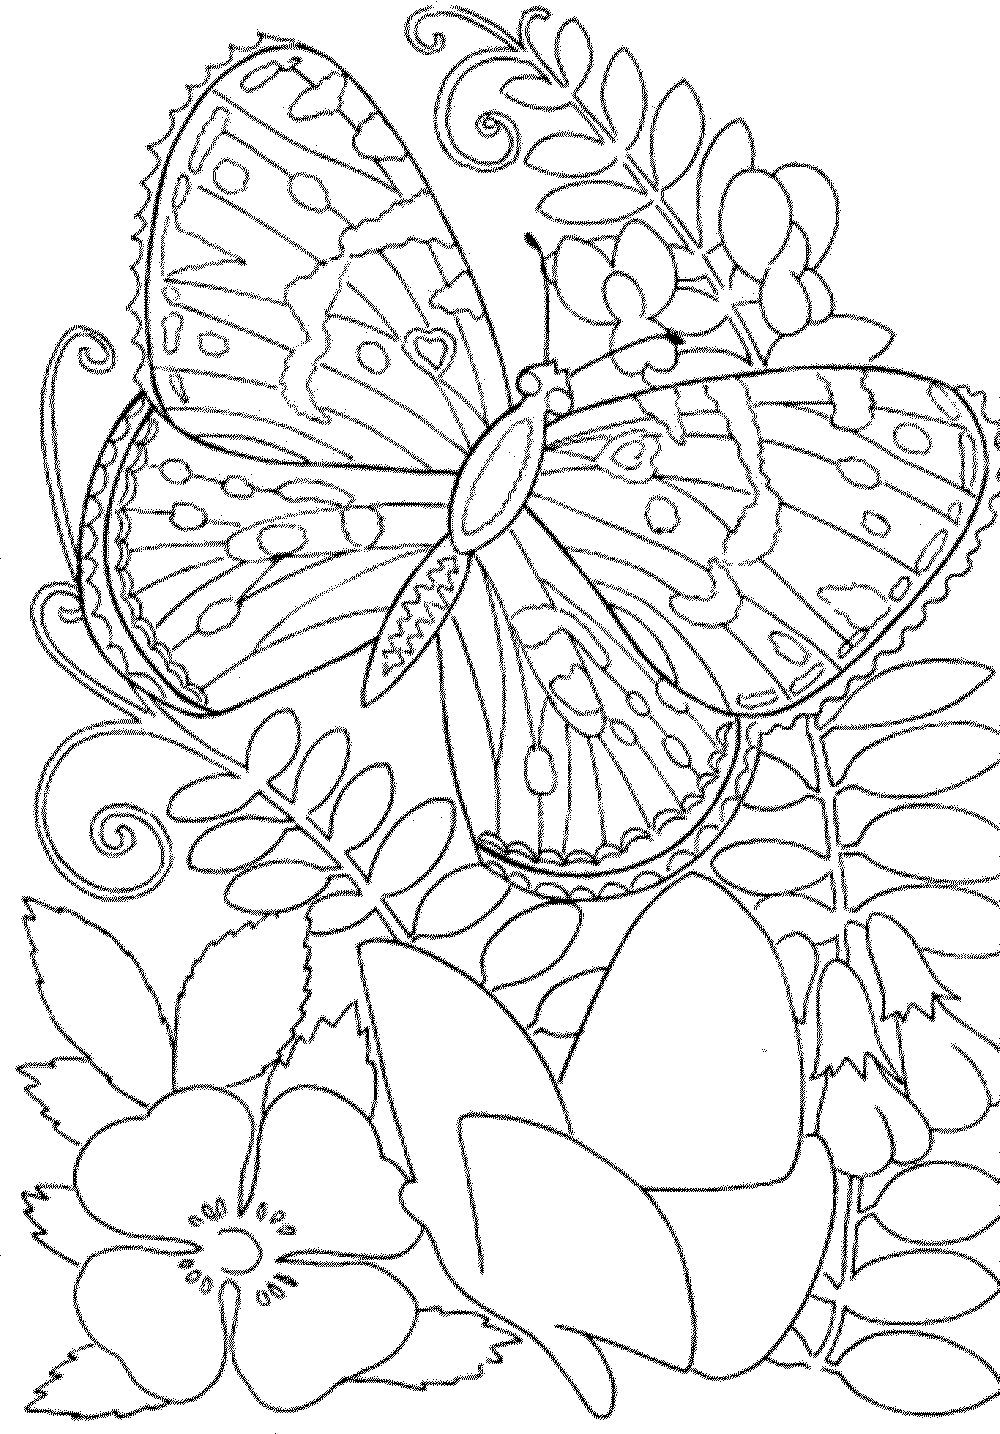 colouring pages for adults online free freckles the fairy coloring page printable colouring online for adults free colouring pages